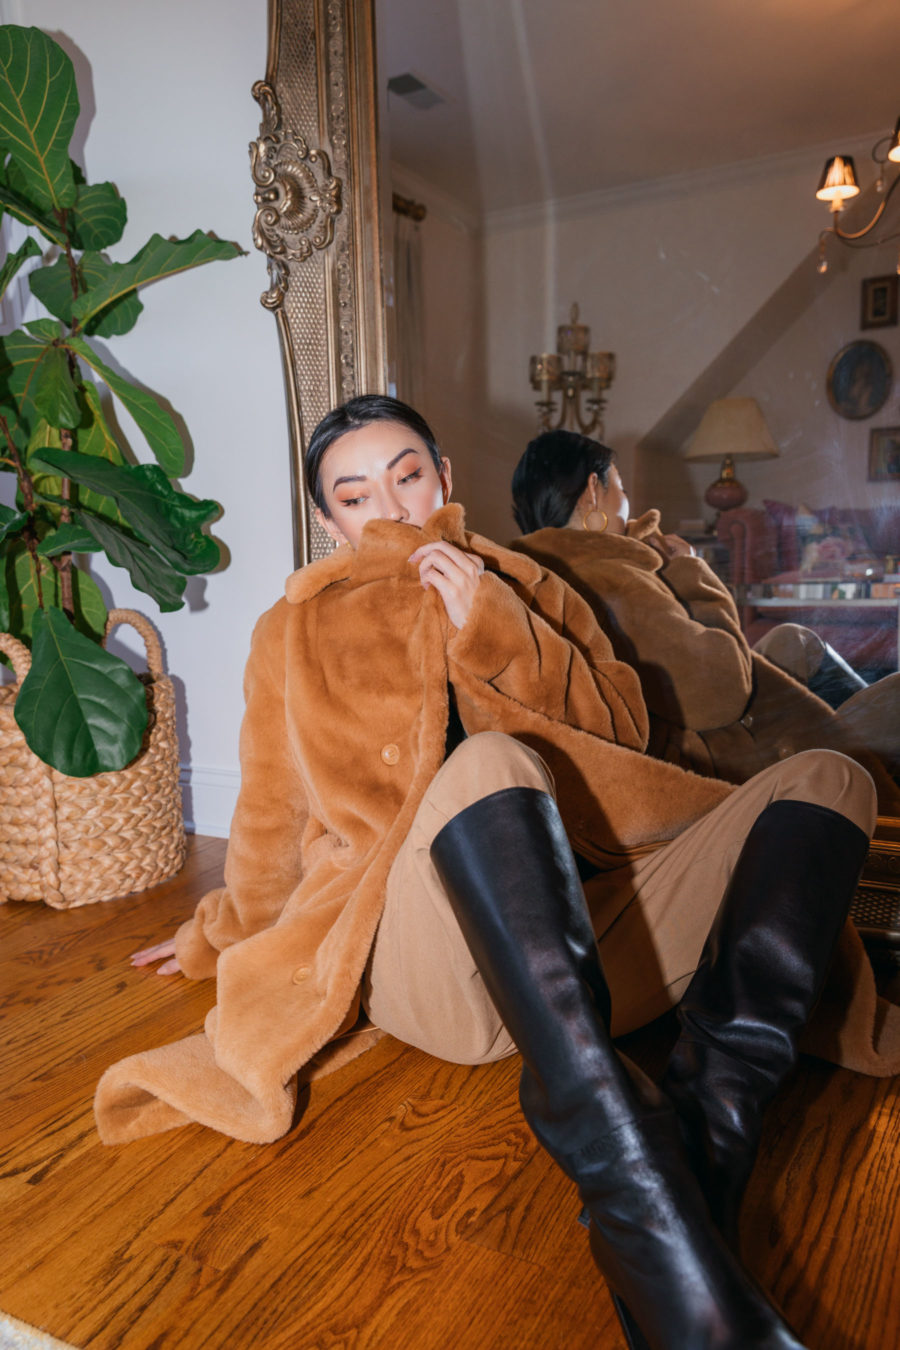 jessica wang wearing a faux fur coat in front of a large gold mirror while sharing trendy decor items for the home // Jessica Wang - Notjessfashion.com